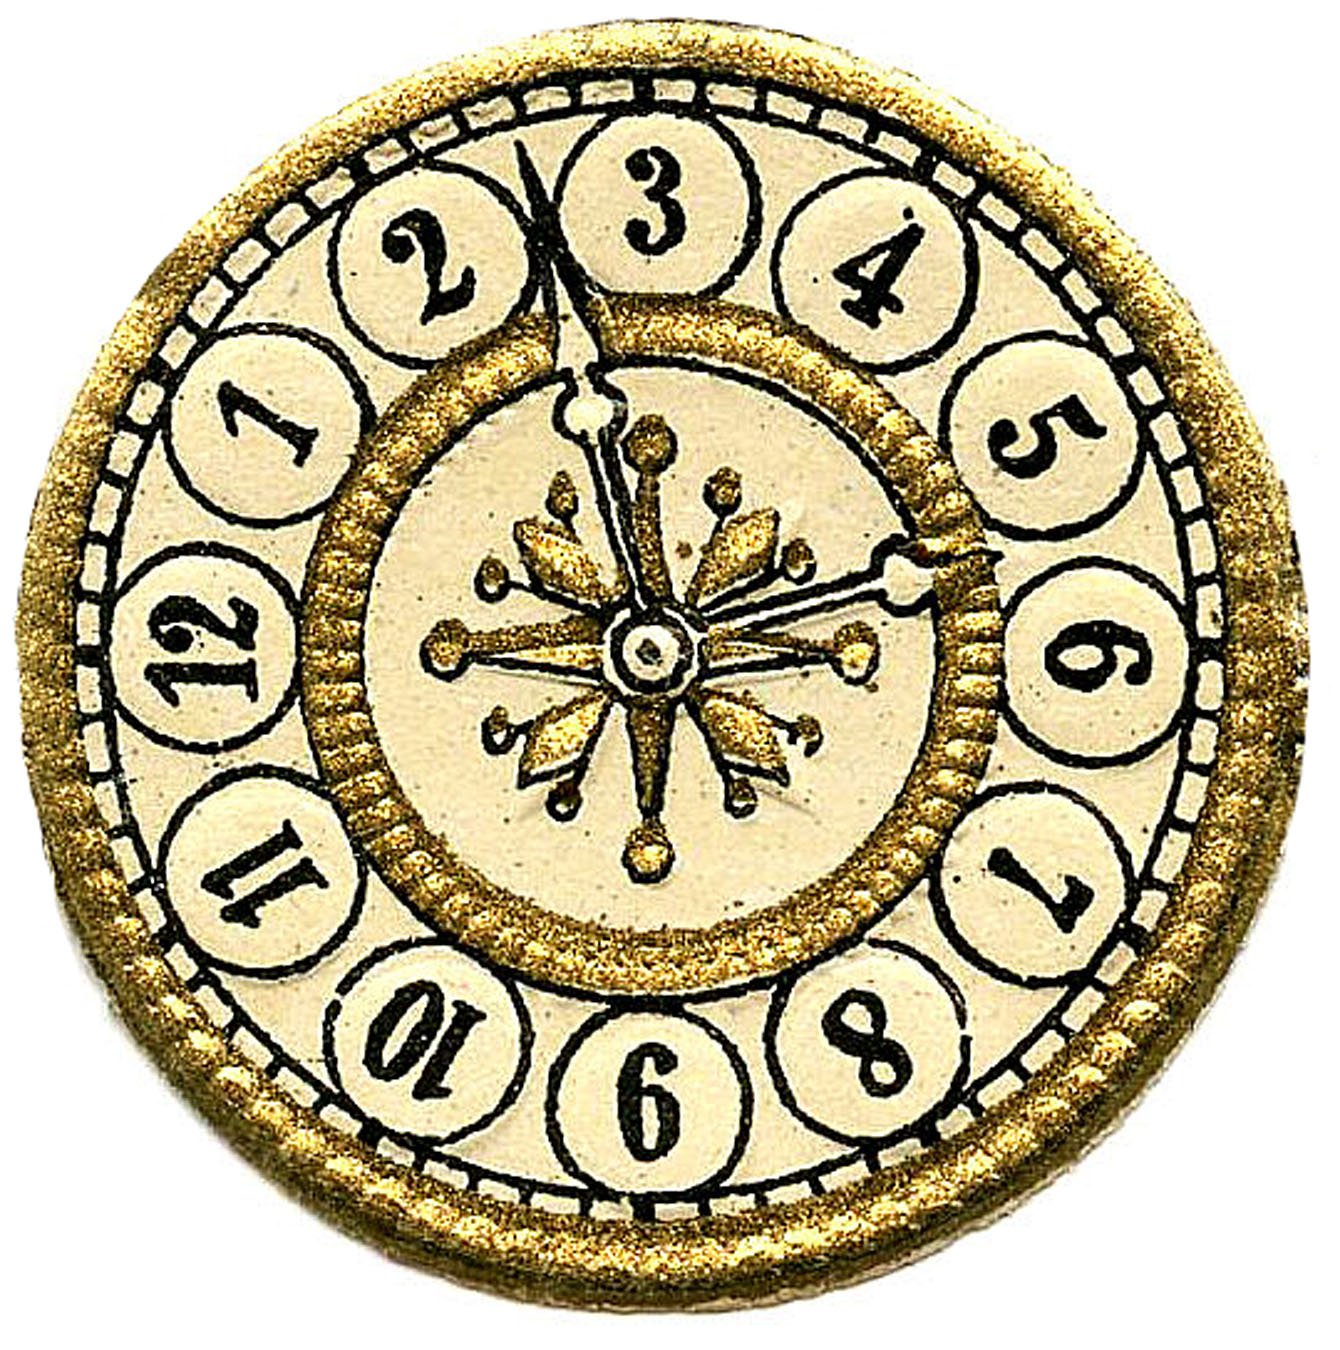 picture relating to Free Printable Clock Face With Hands called Printable Clock Deal with With Fingers Frees That Oneself Can Obtain